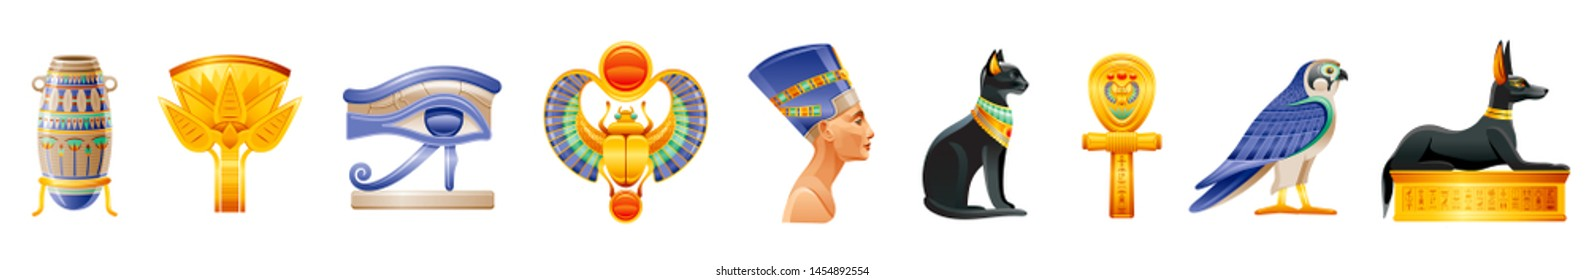 Ancient Egypt icon set. 3d God, pharaoh sign. Cartoon vase, lotus, wadjet eye, scarab, Nefertiti, Cleopatra queen, Bastet cat, ankh coptic cross, Horus Ra falcon, Anubis dog tomb. Vector Egypt old art